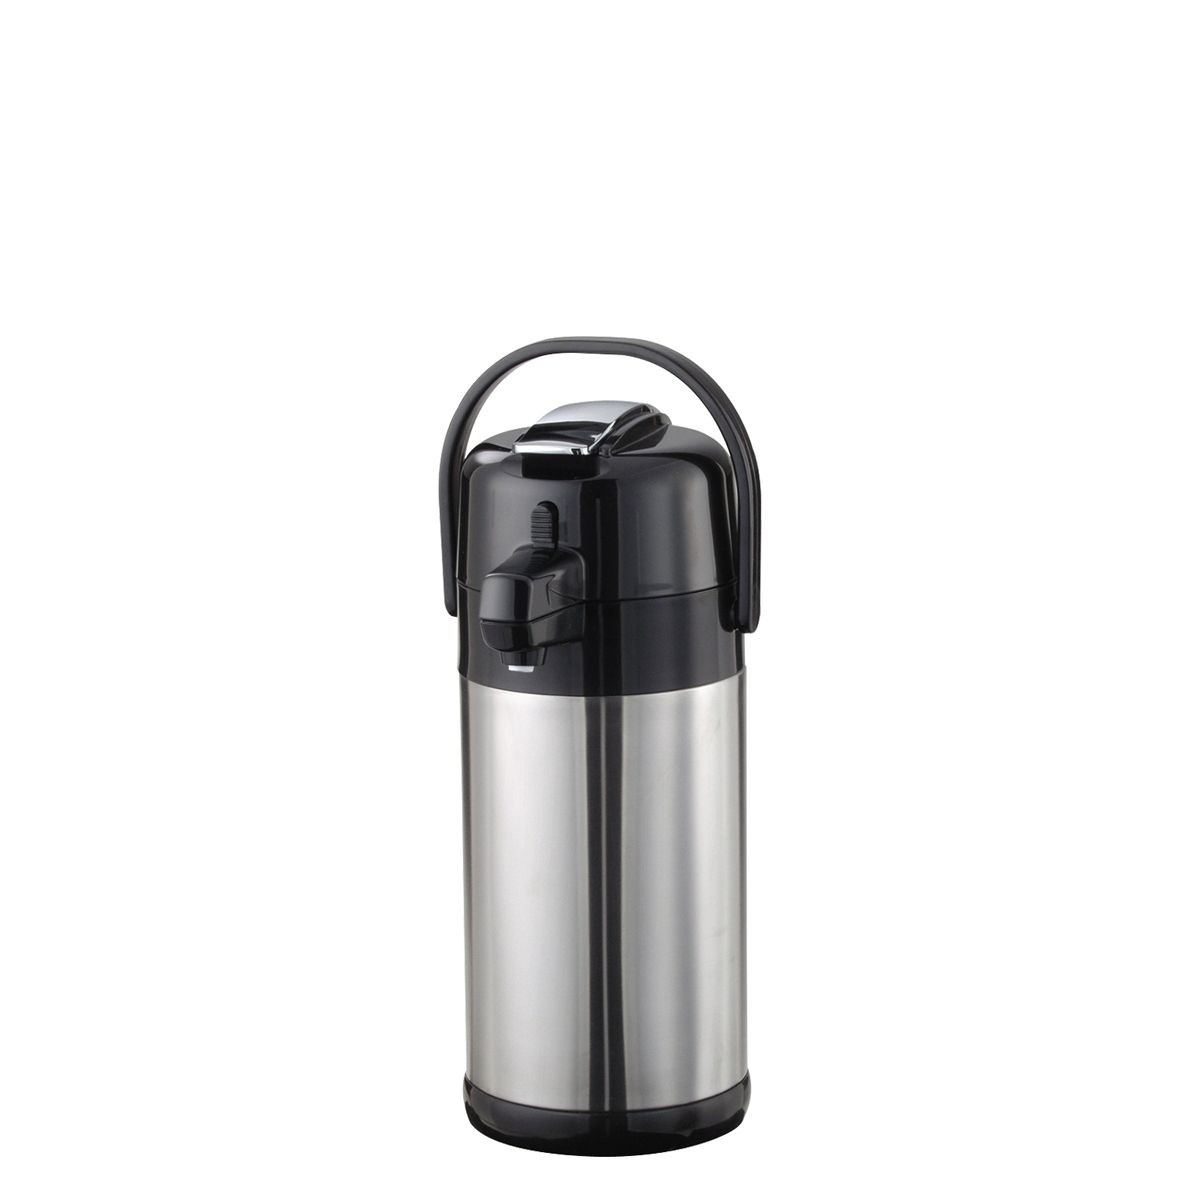 Service Ideas SECAL25S Airpot with Interchangeable Lever Lid, 2.5 Liter